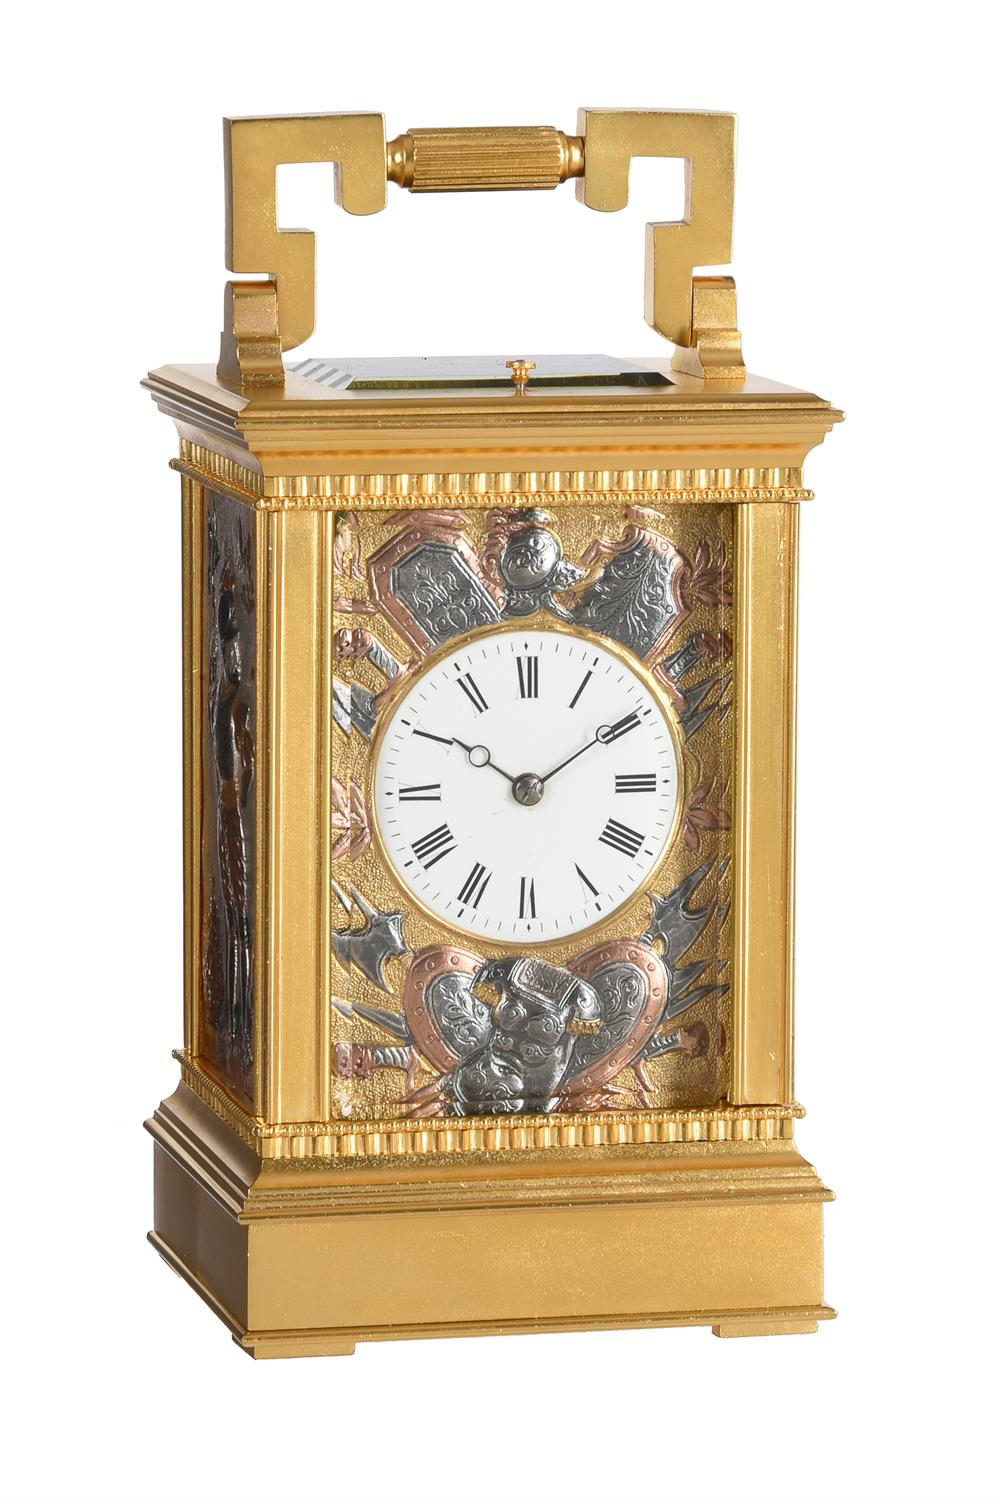 A fine French gilt brass carriage clock with multi-colour relief cast panels and push-button repeat